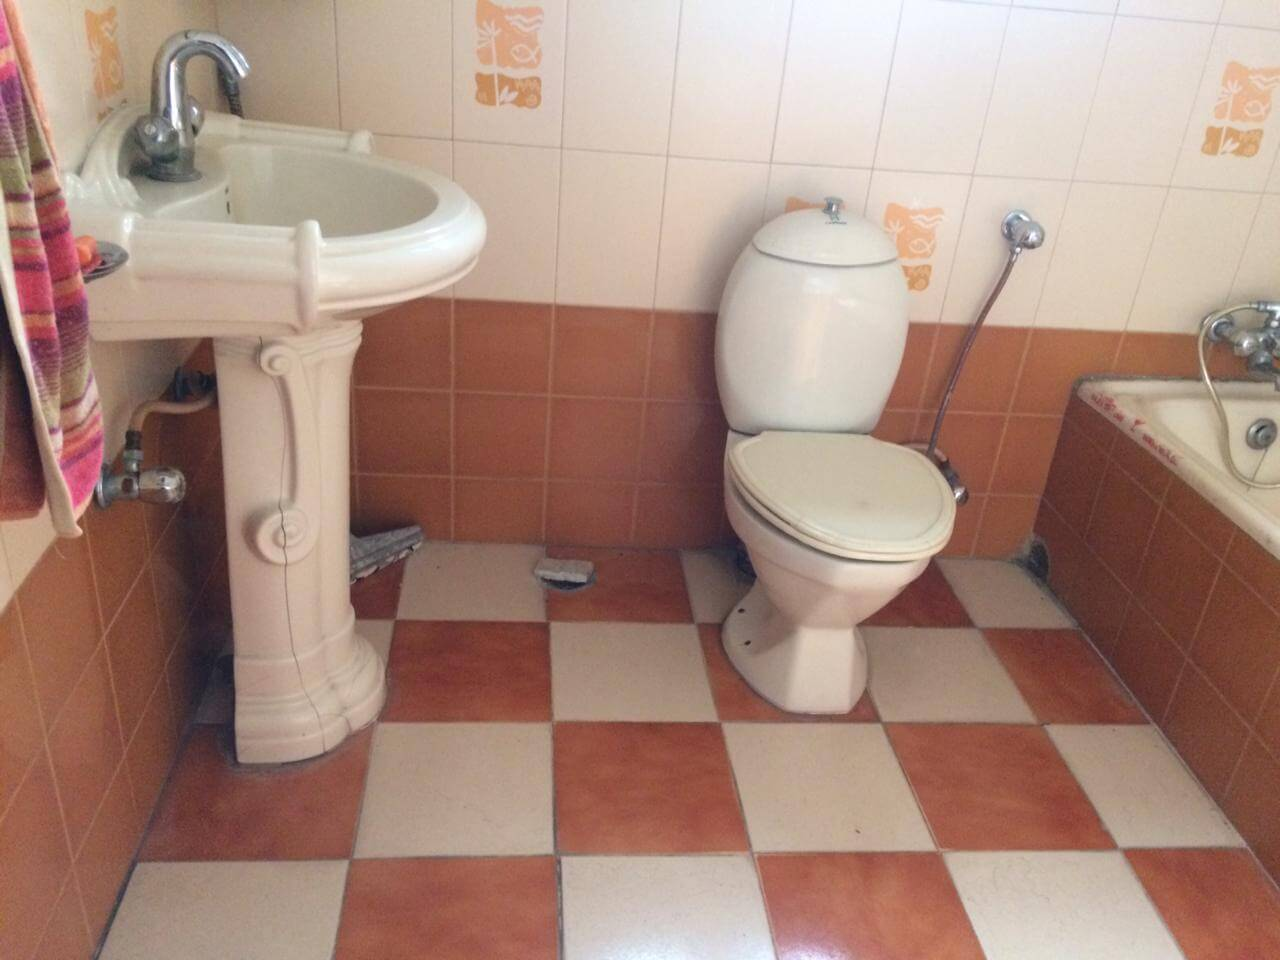 1 BHK Apartment / Flat for Paying Guest 4-5 Marla at Pathankot